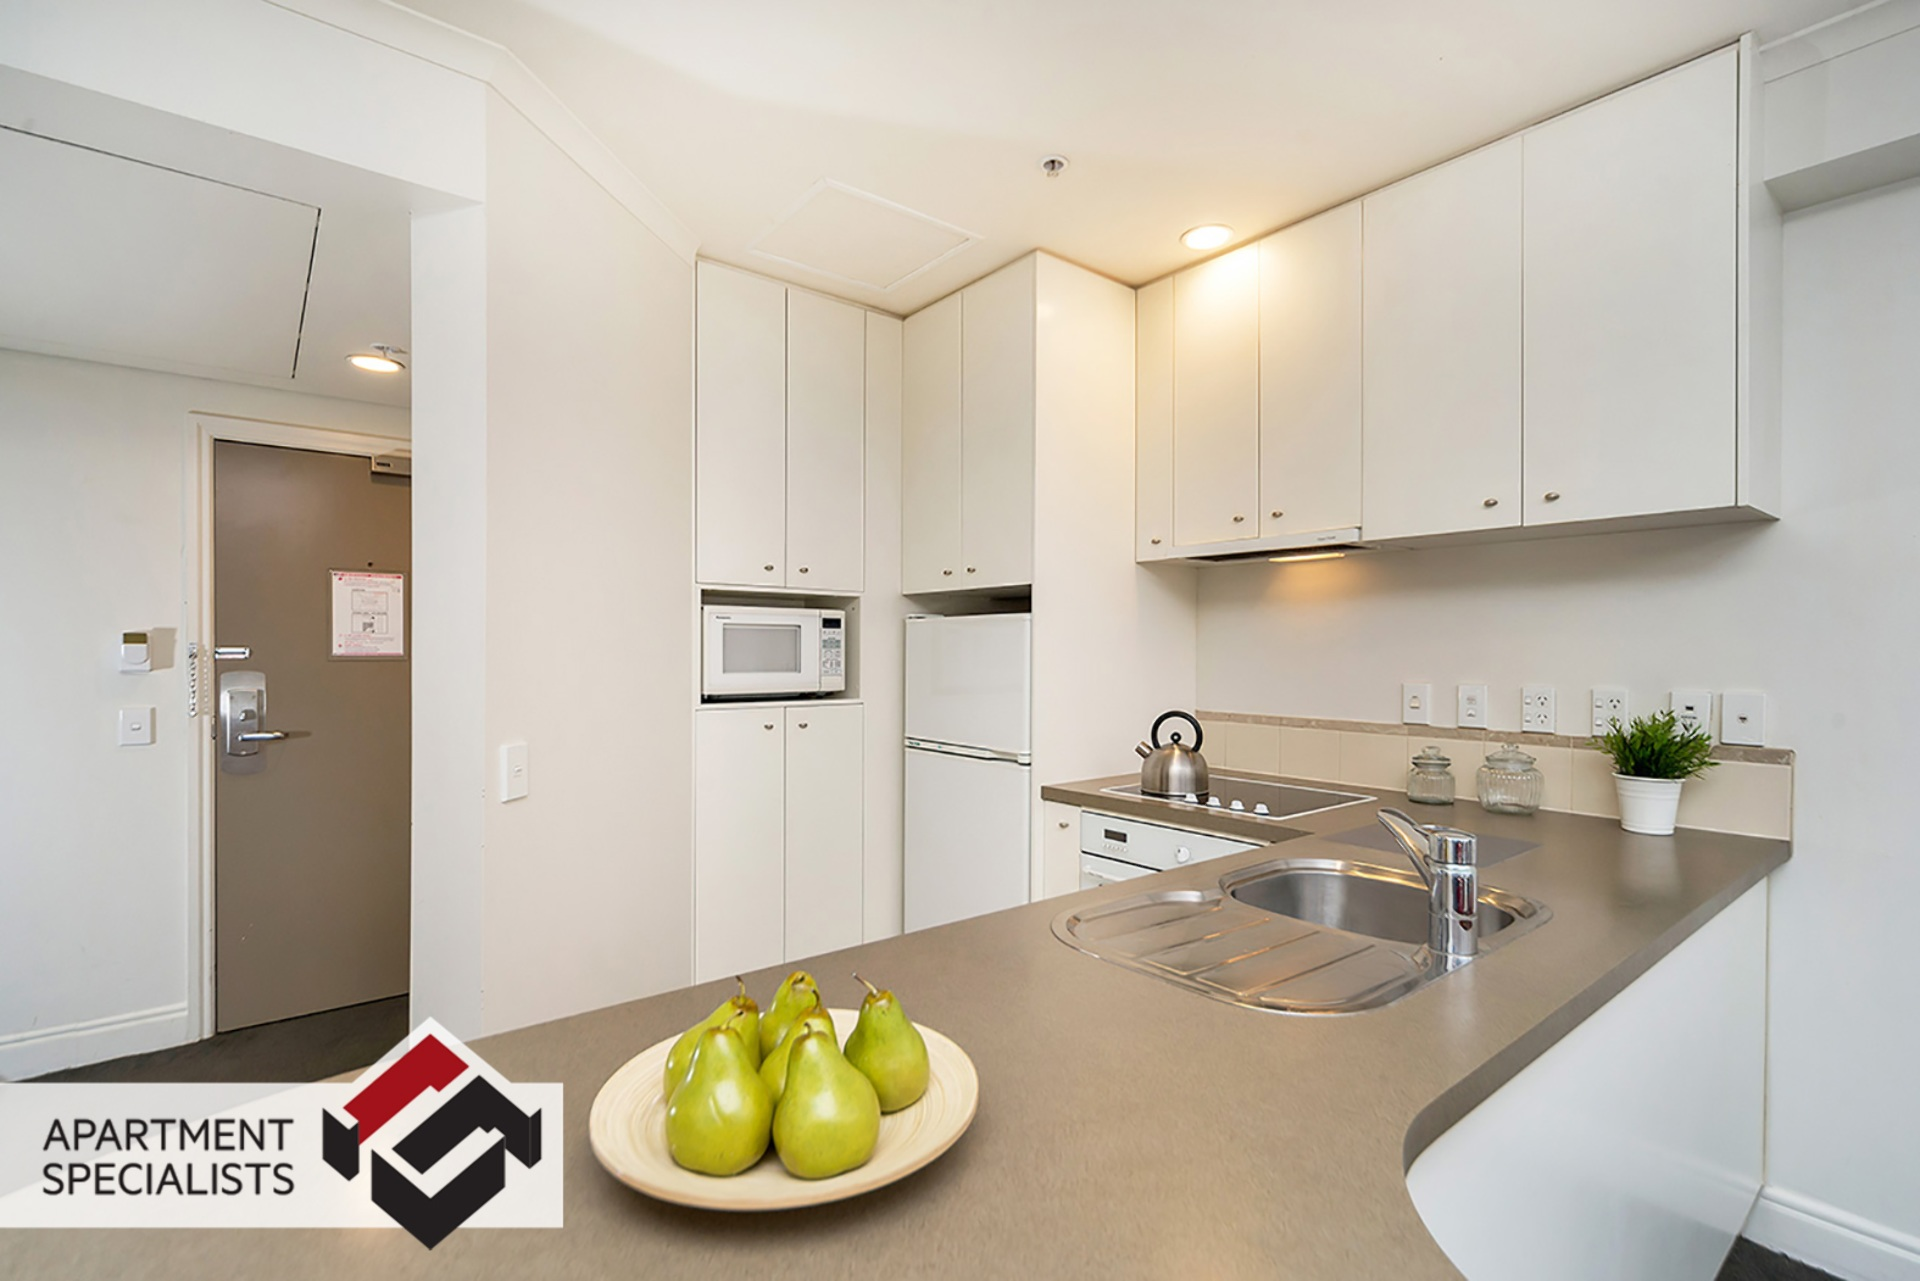 4 | 171 CBD, City Centre | Apartment Specialists